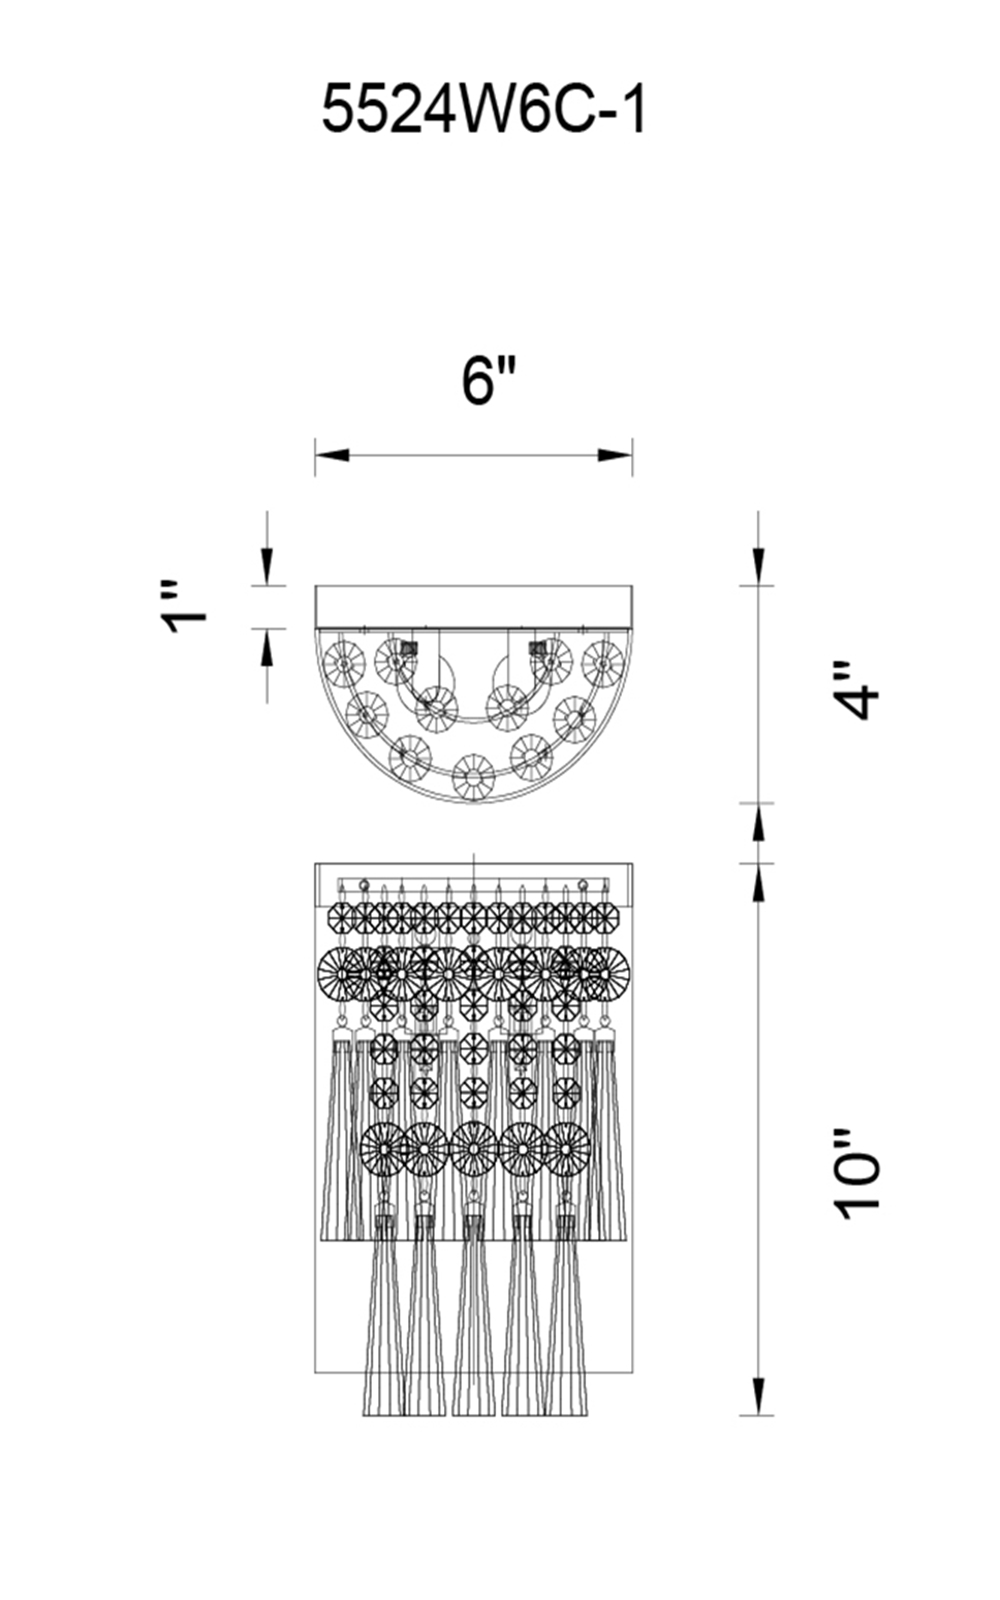 CWI Lighting Blissful 1 Light Bathroom Sconce With Chrome Finish Model: 5524W6C-1 Line Drawing